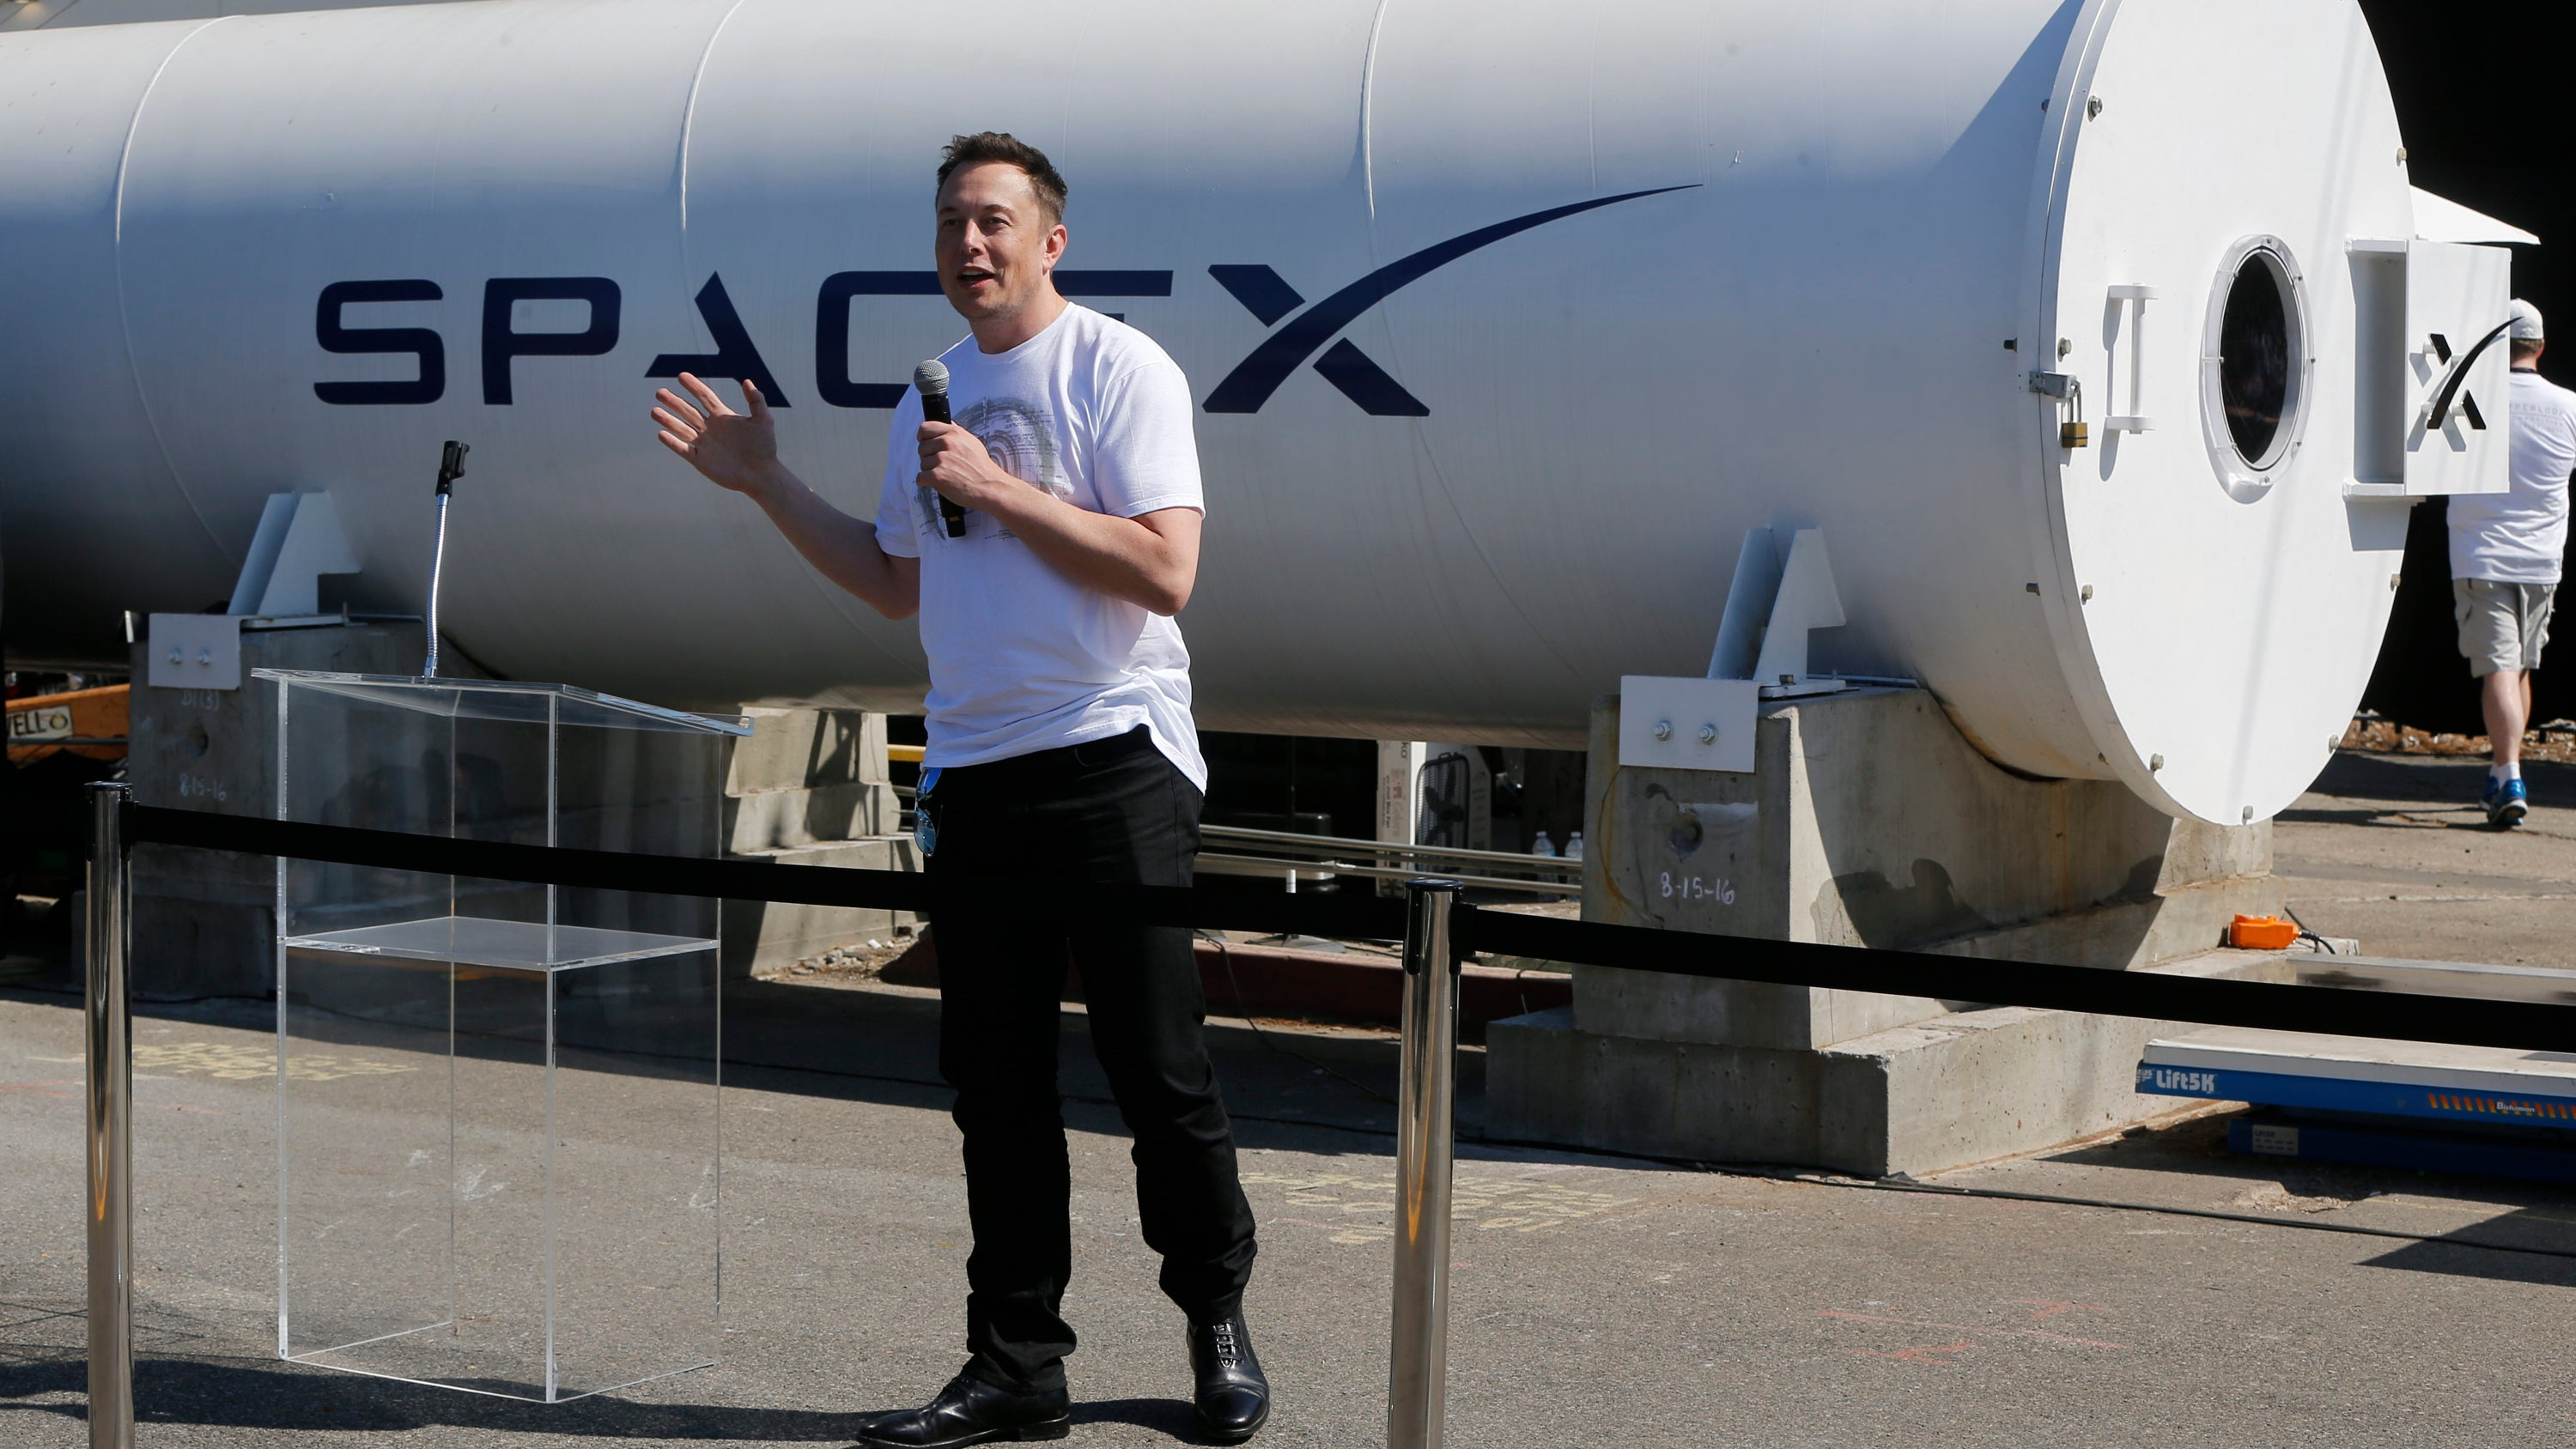 This map shows just how serious Elon Musk's tunneling plans are